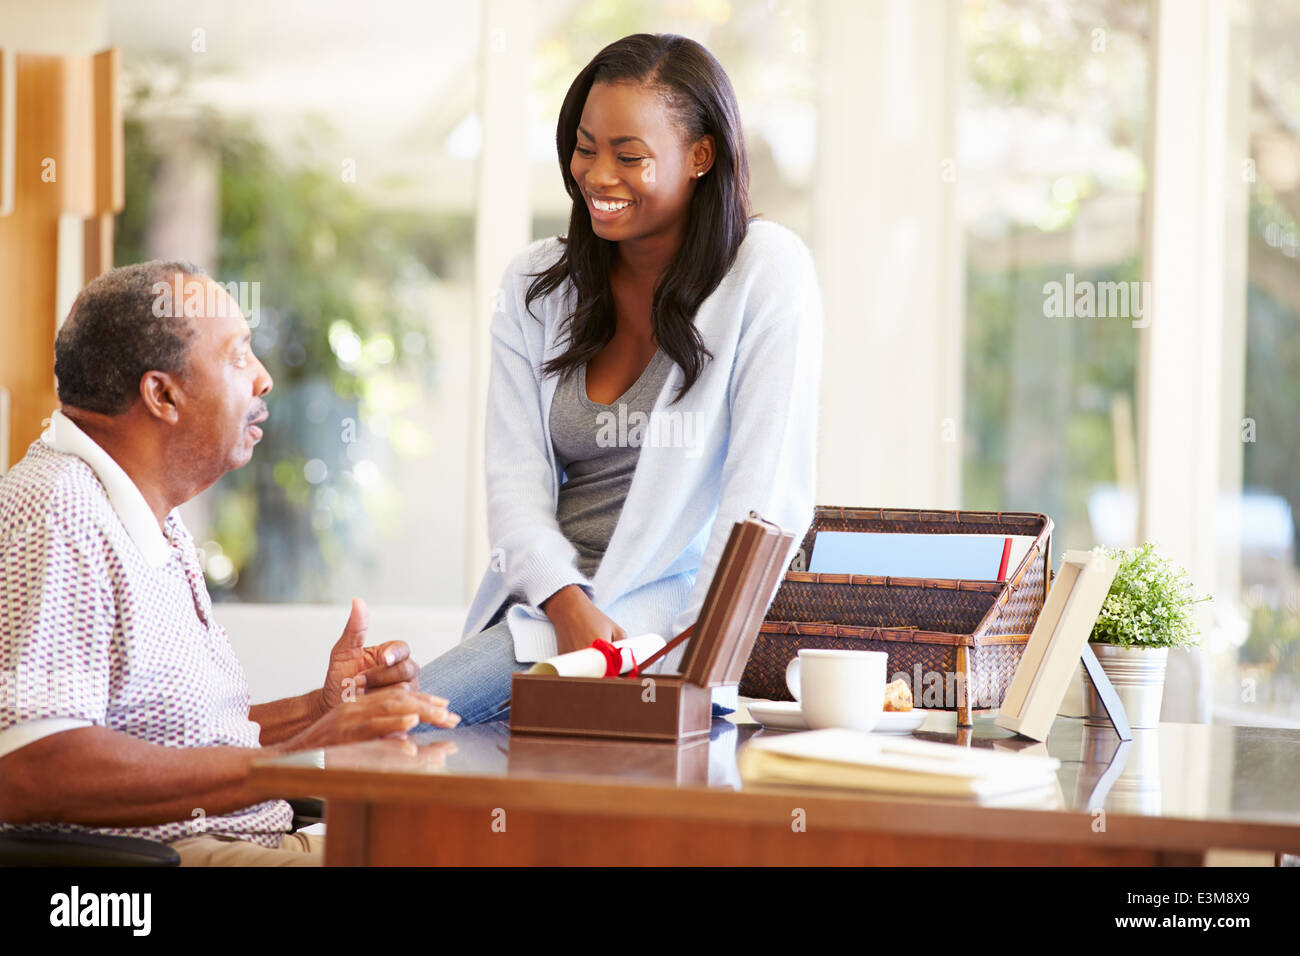 Senior Father Discussing Document With Adult Daughter - Stock Image